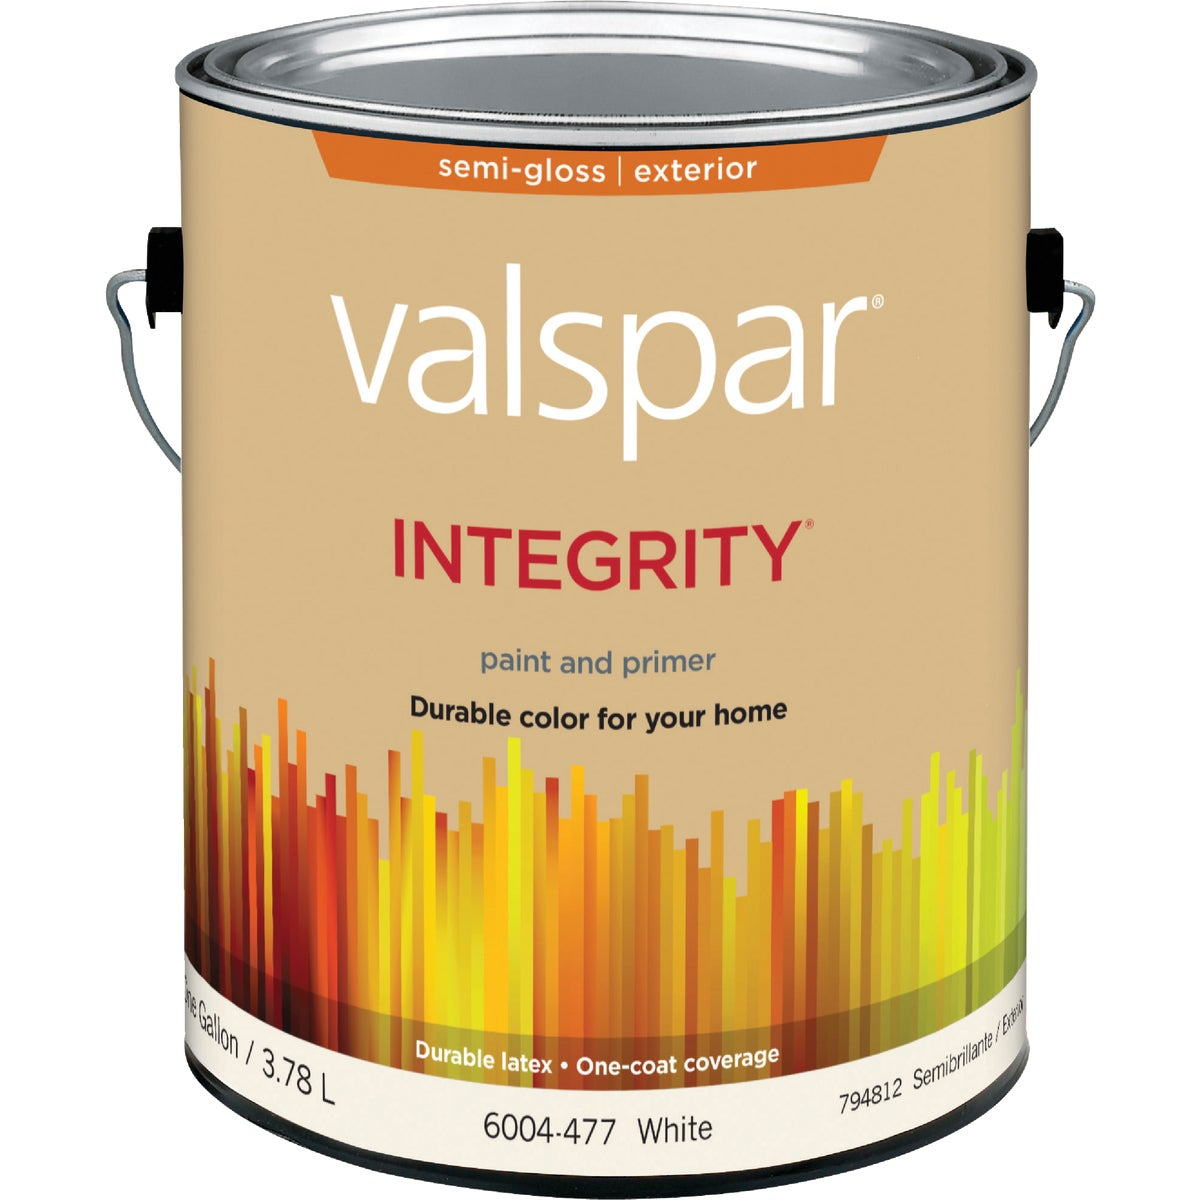 EXT S/G WHITE PAINT - 004.6004477.007 by Valspar Corp